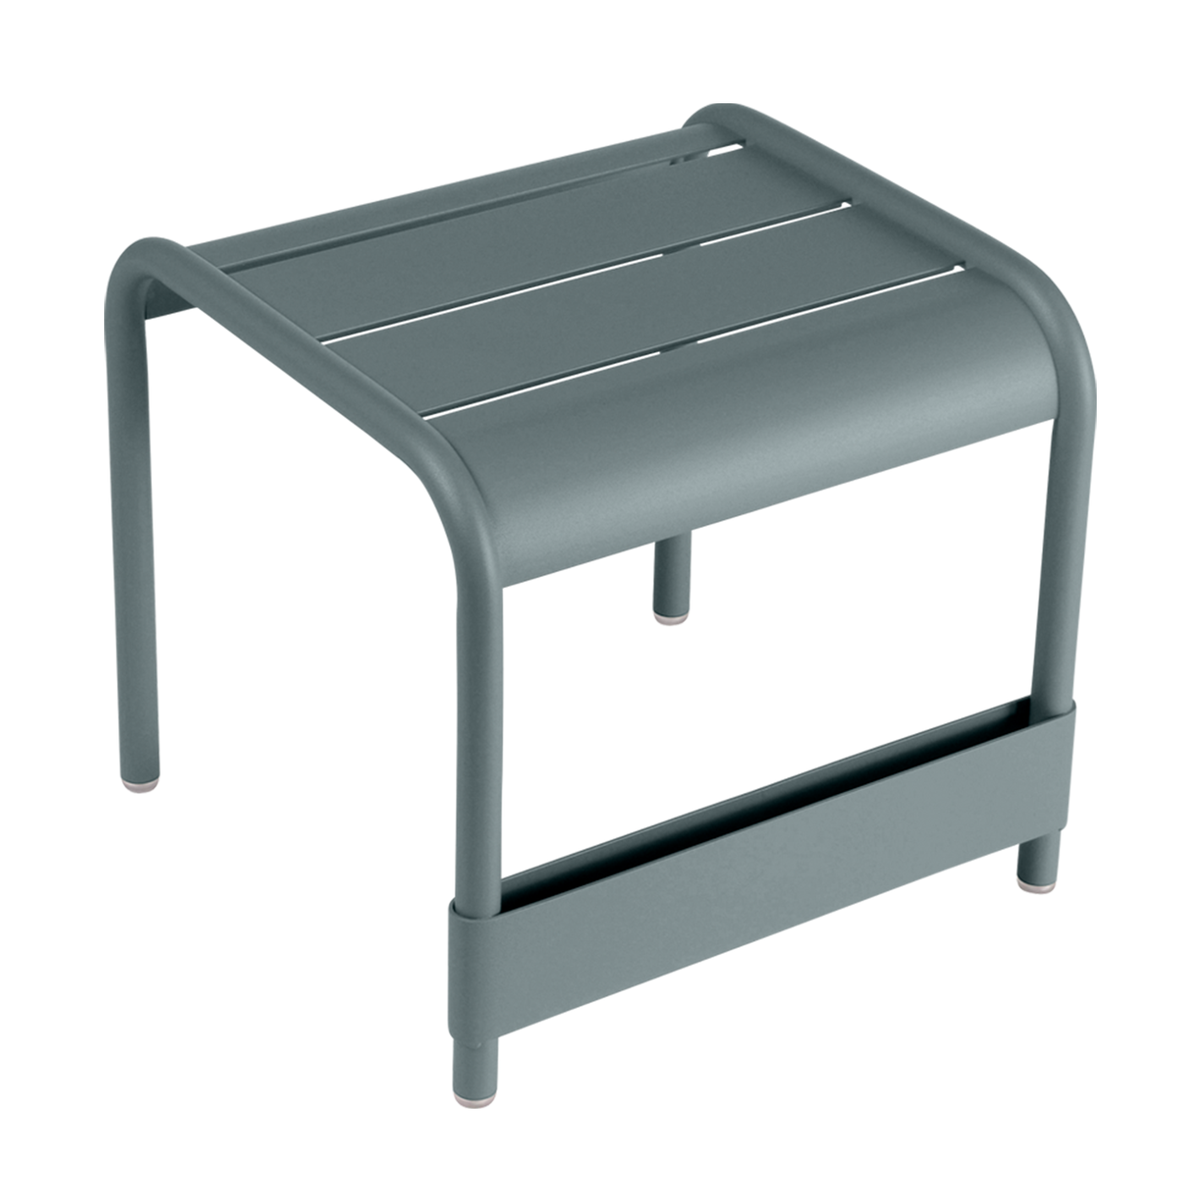 Fermob Luxembourg table/footrest, storm grey from Fermob